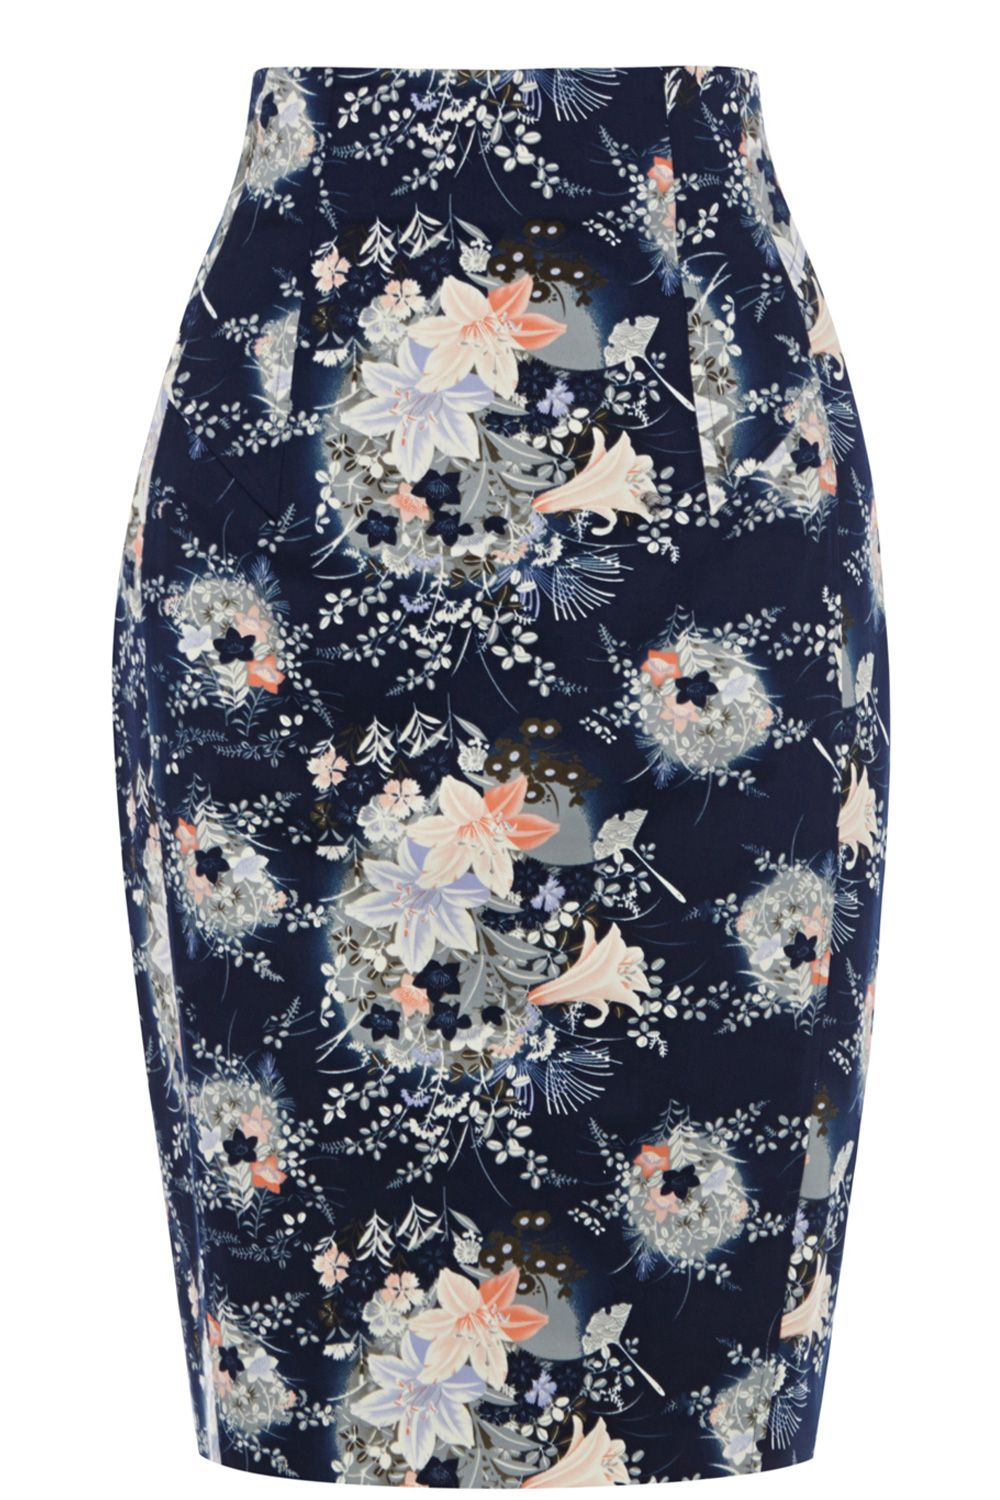 Oriental fan print pencil skirt